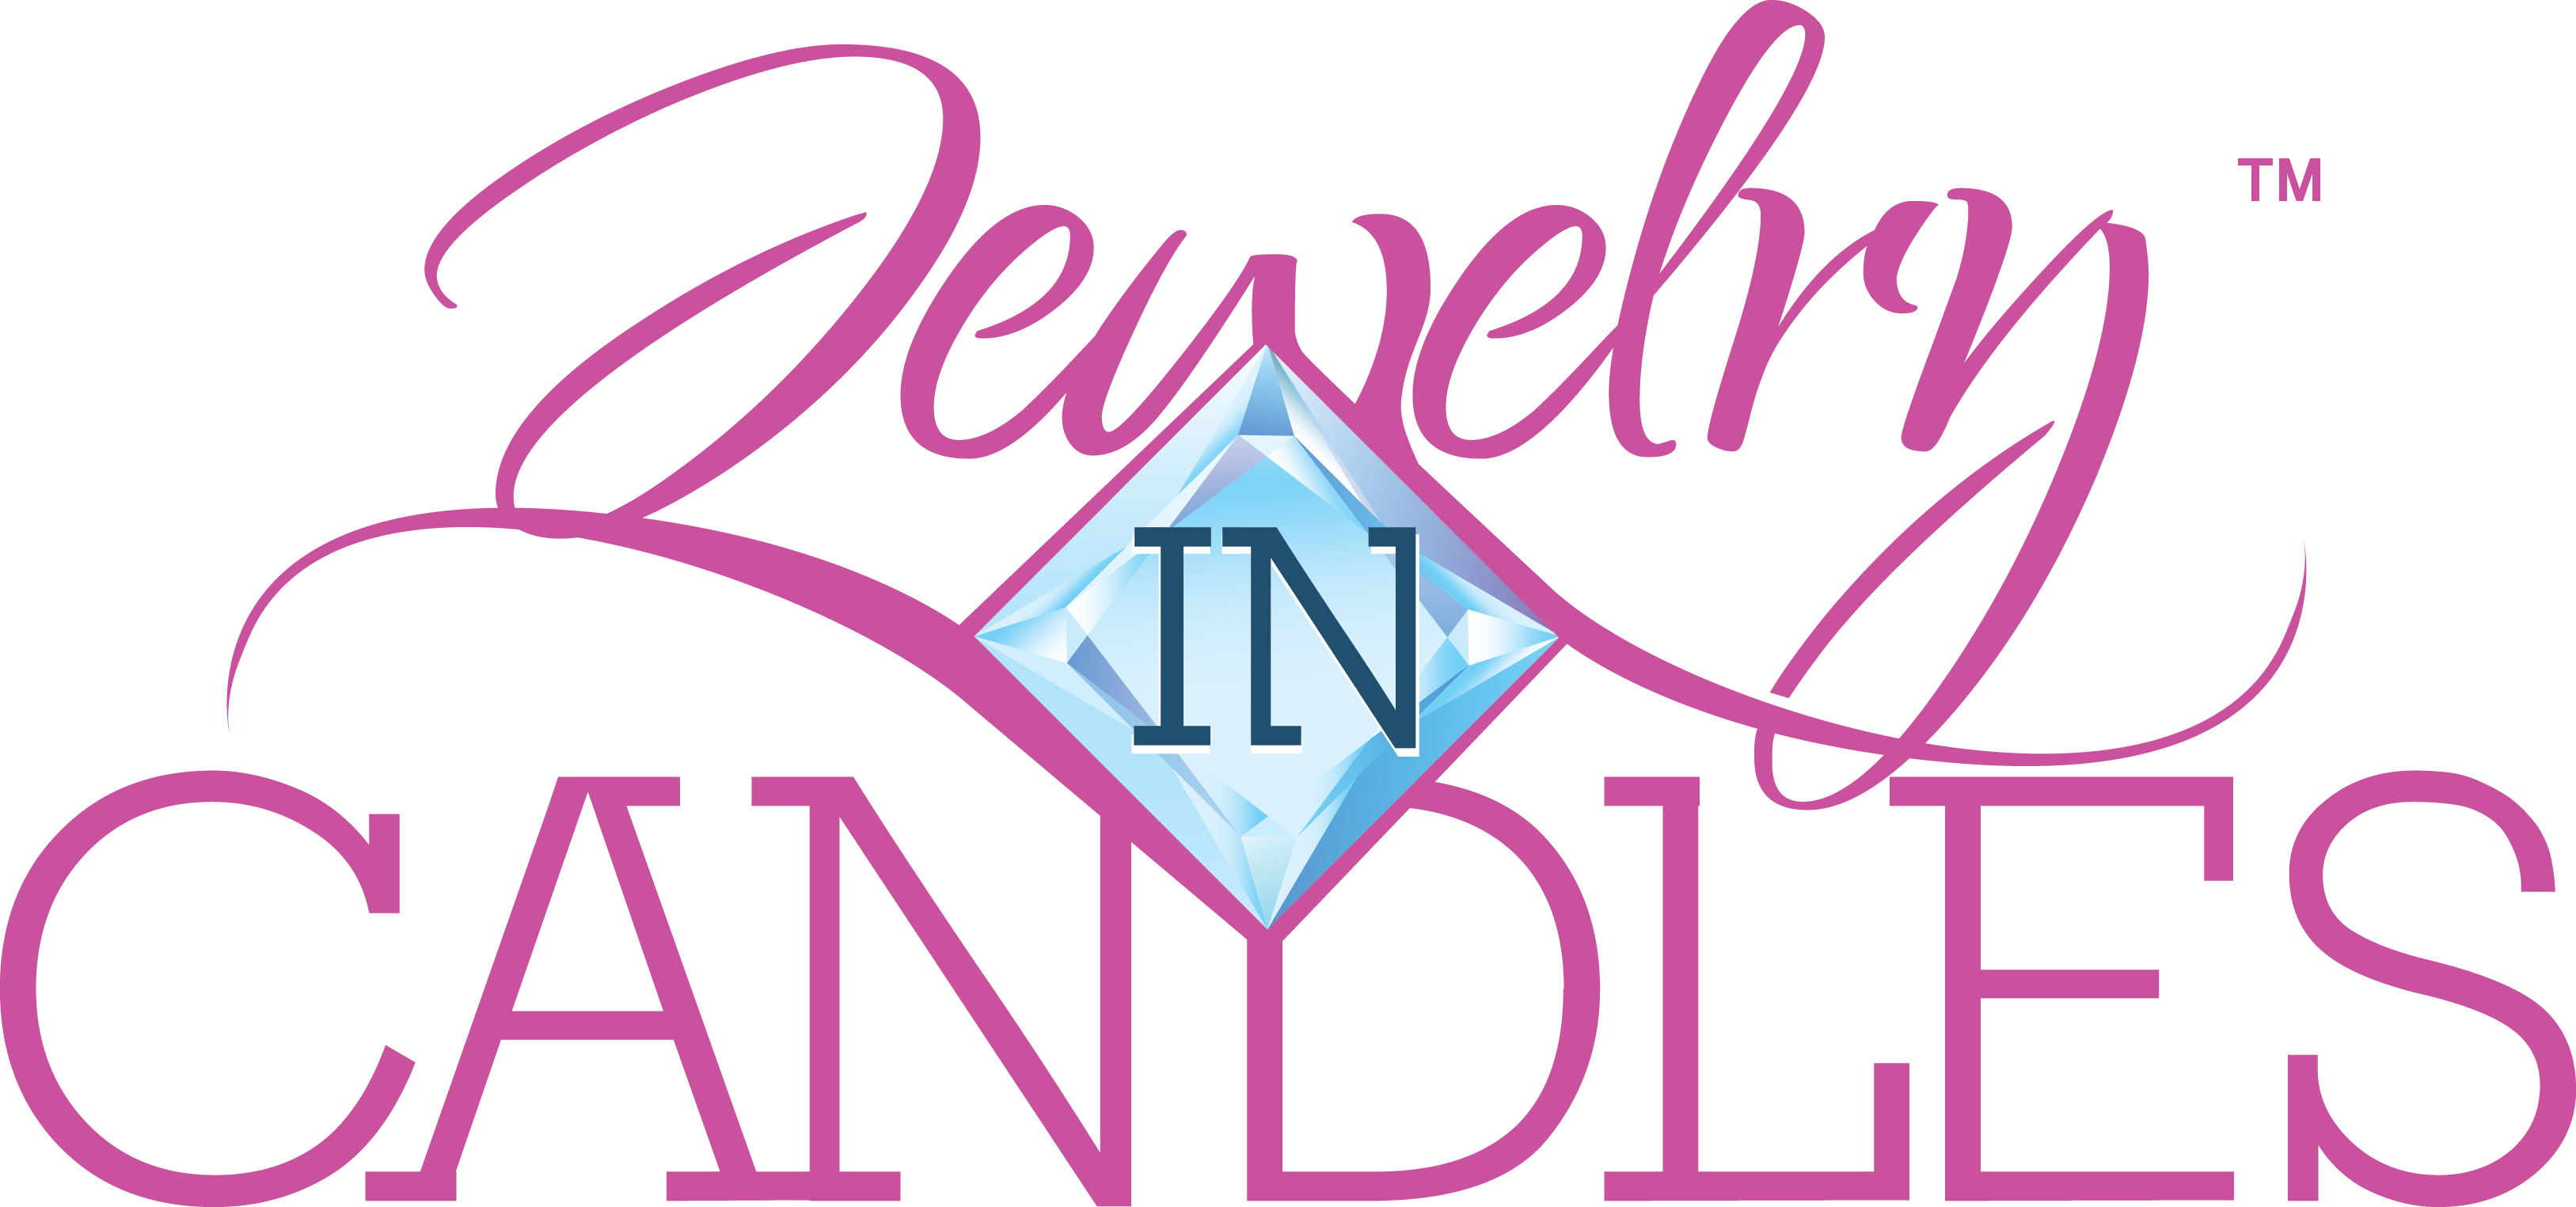 Become a Jewelry in Candles Rep